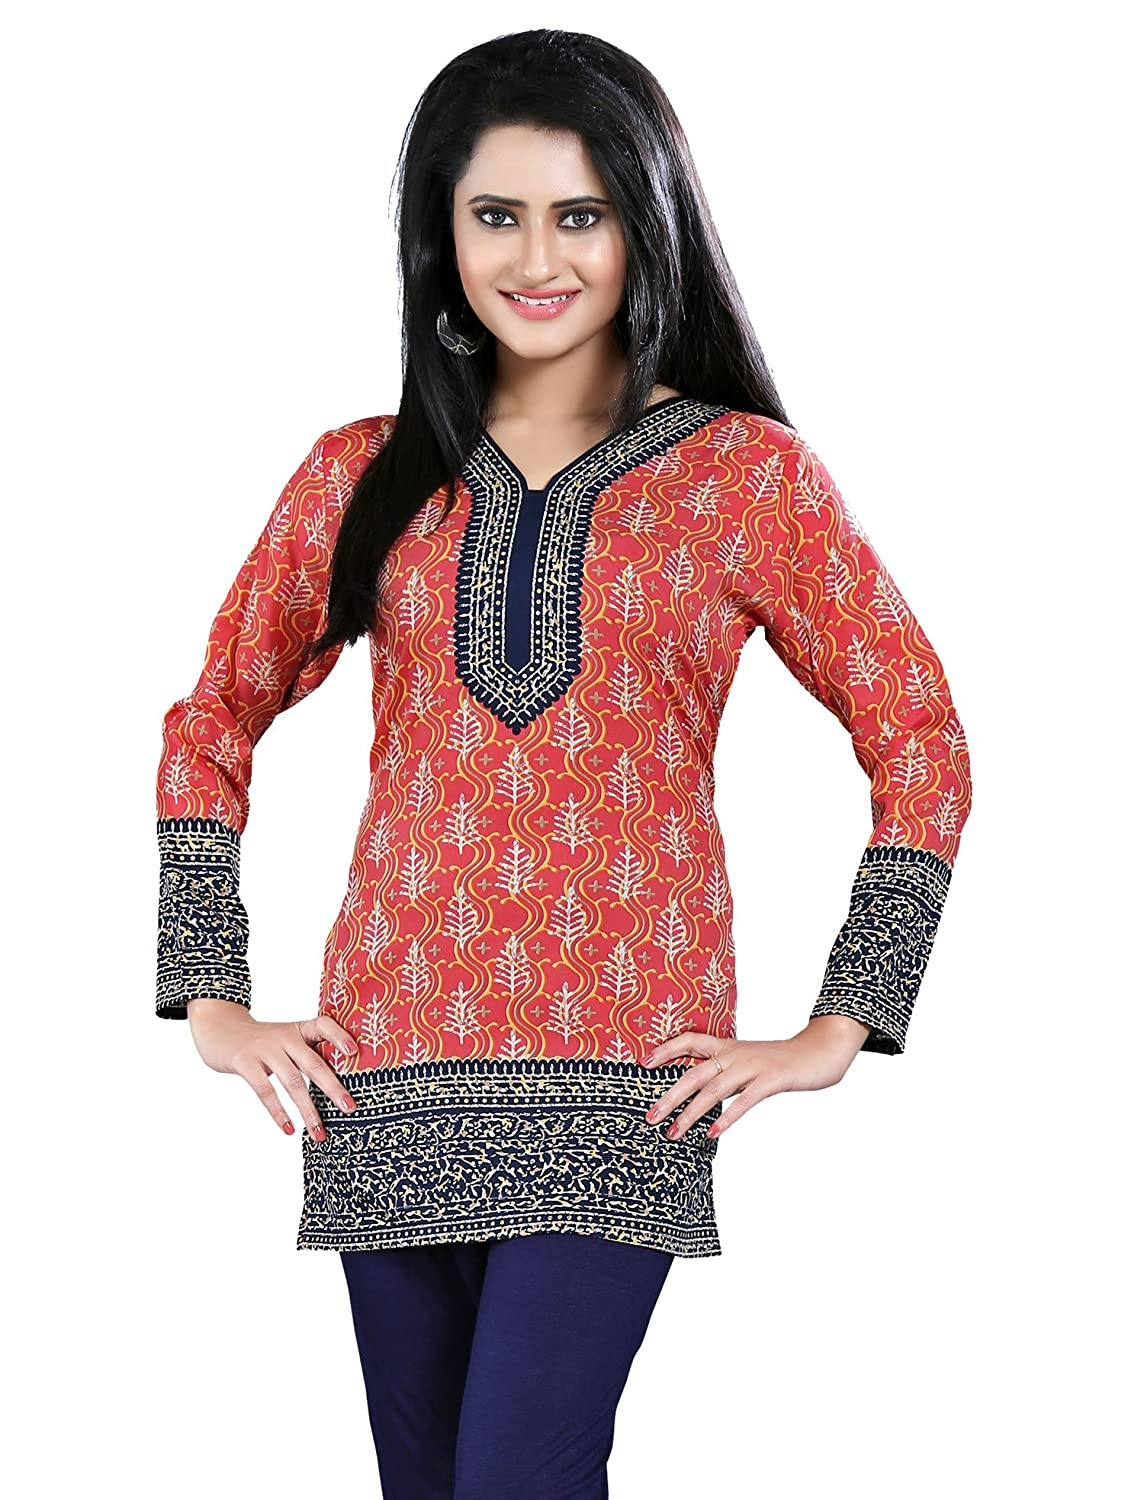 Maple Clothing Printed Long Sleeve Indian Kurti Top Tunic Womens Blouse Event121p